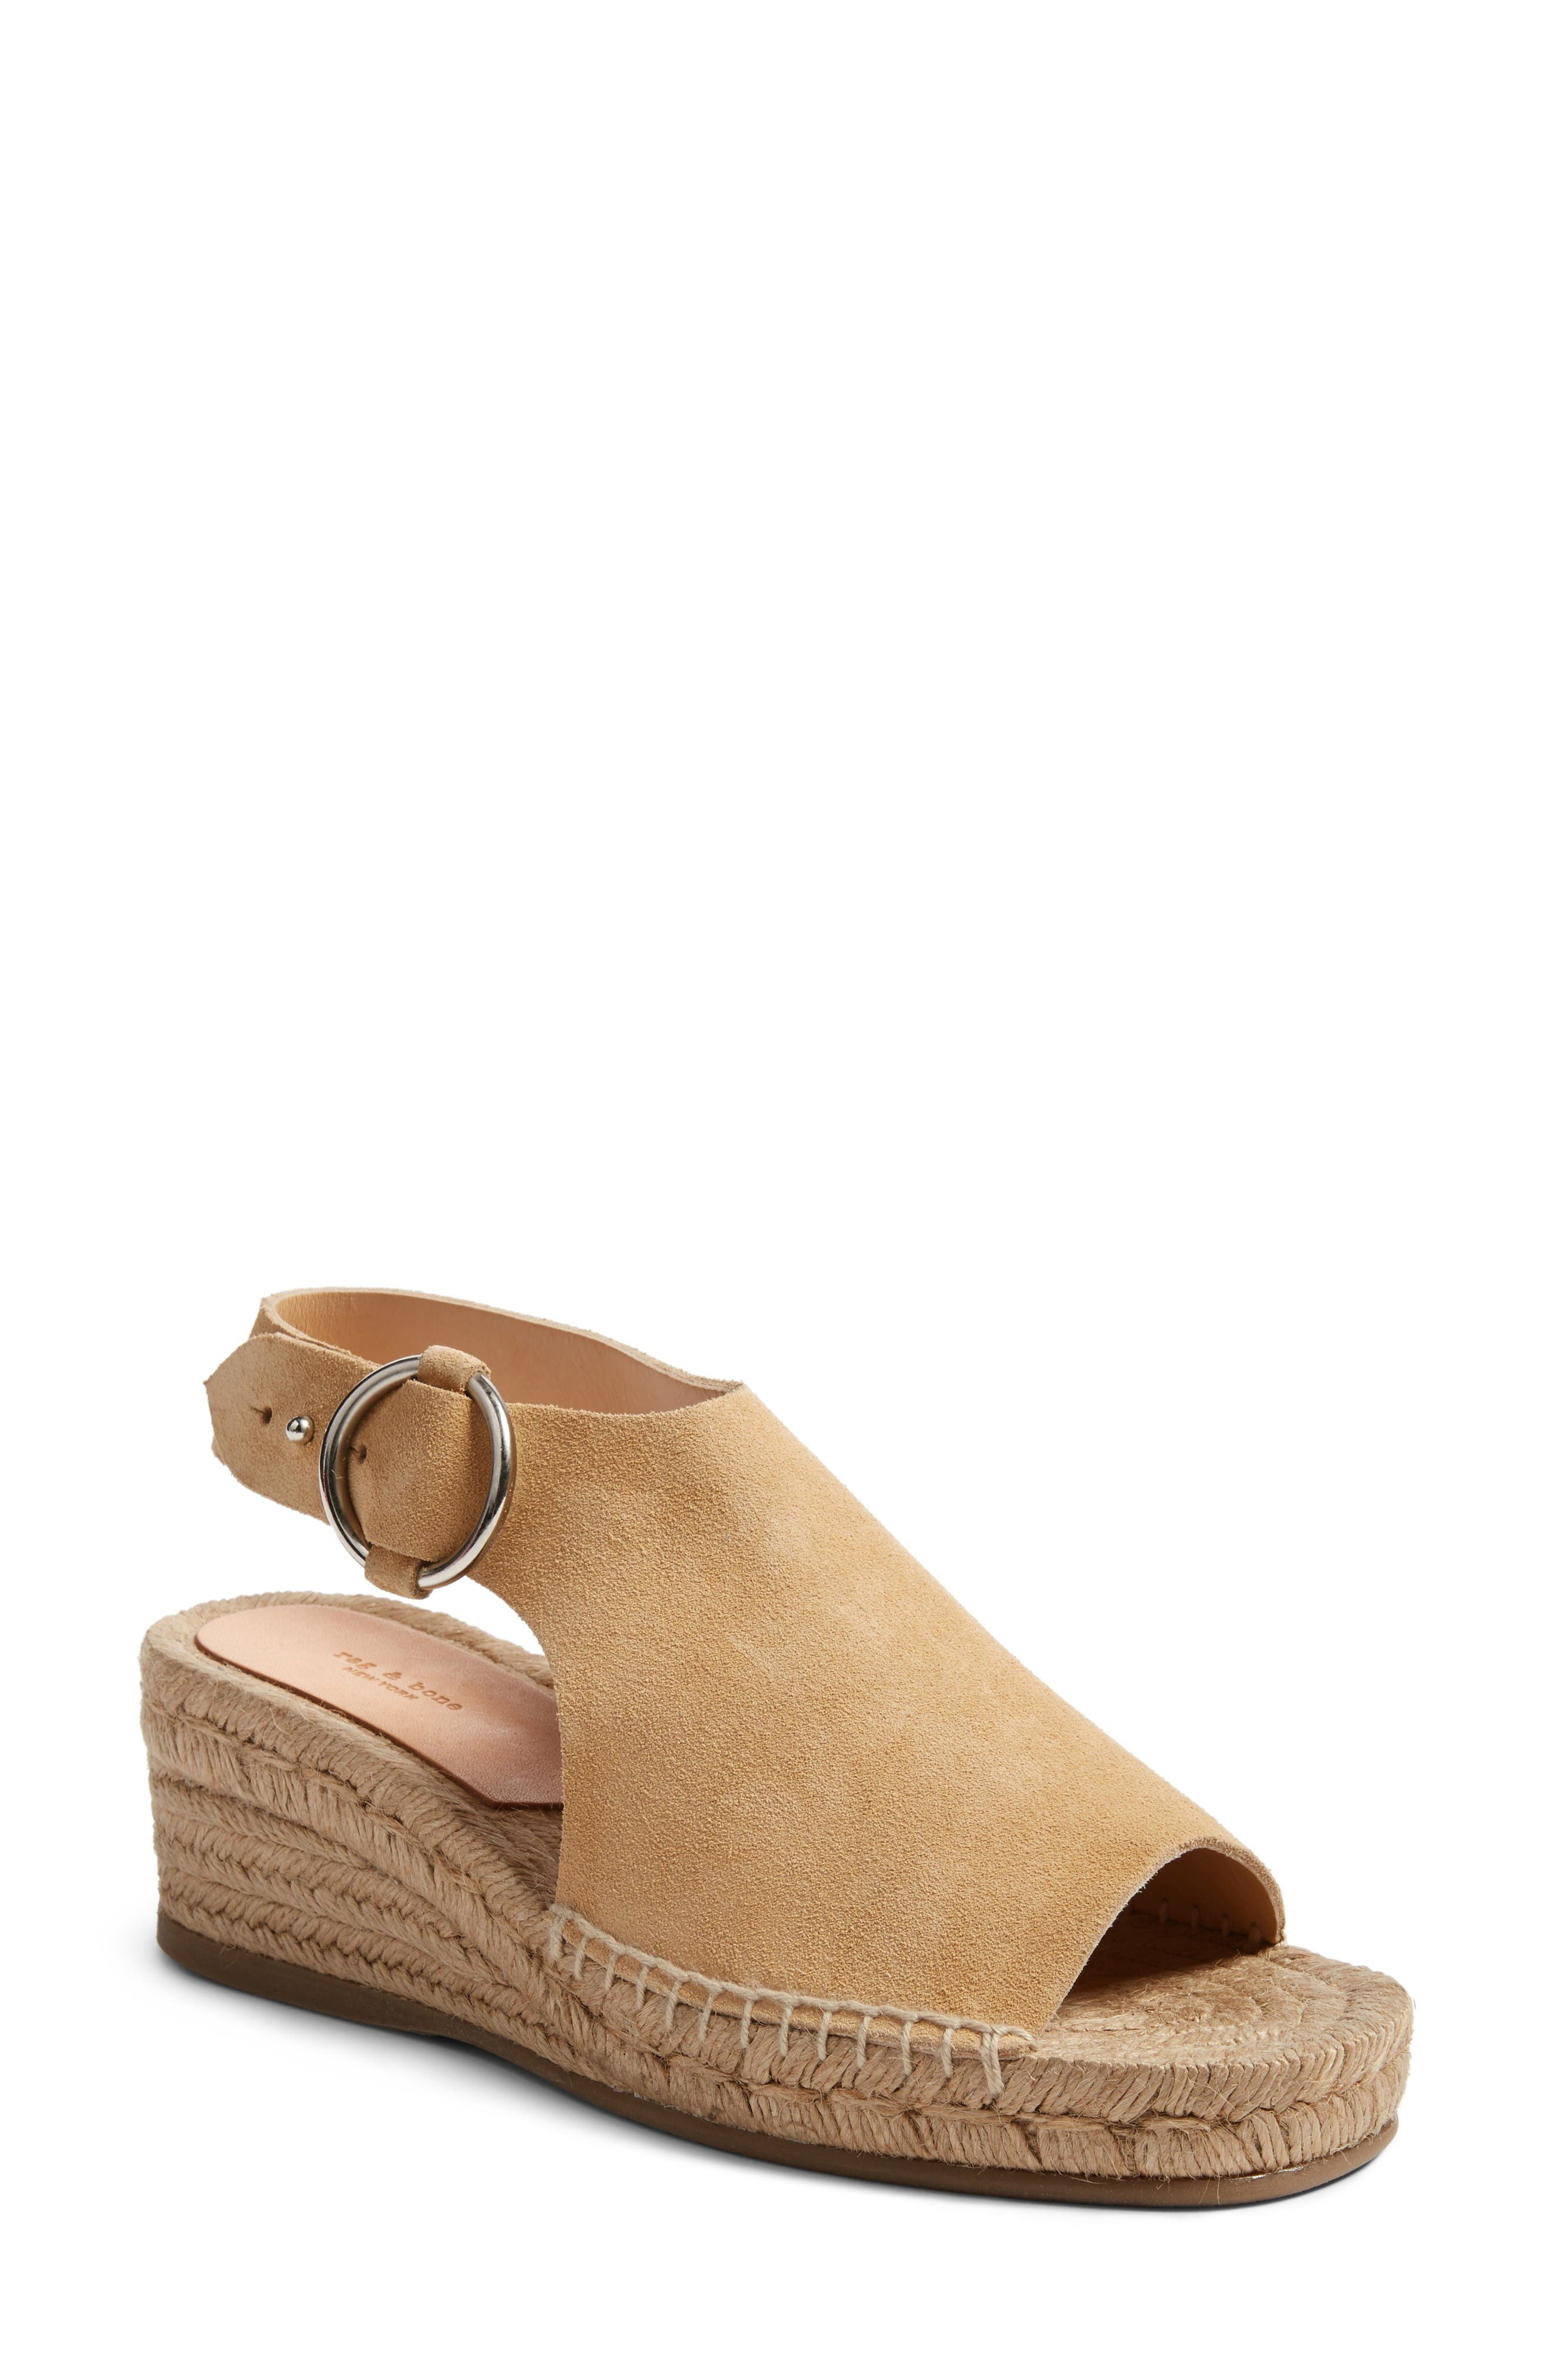 Alternate Image 1 Selected - rag & bone Calla Espadrille Wedge (Women)